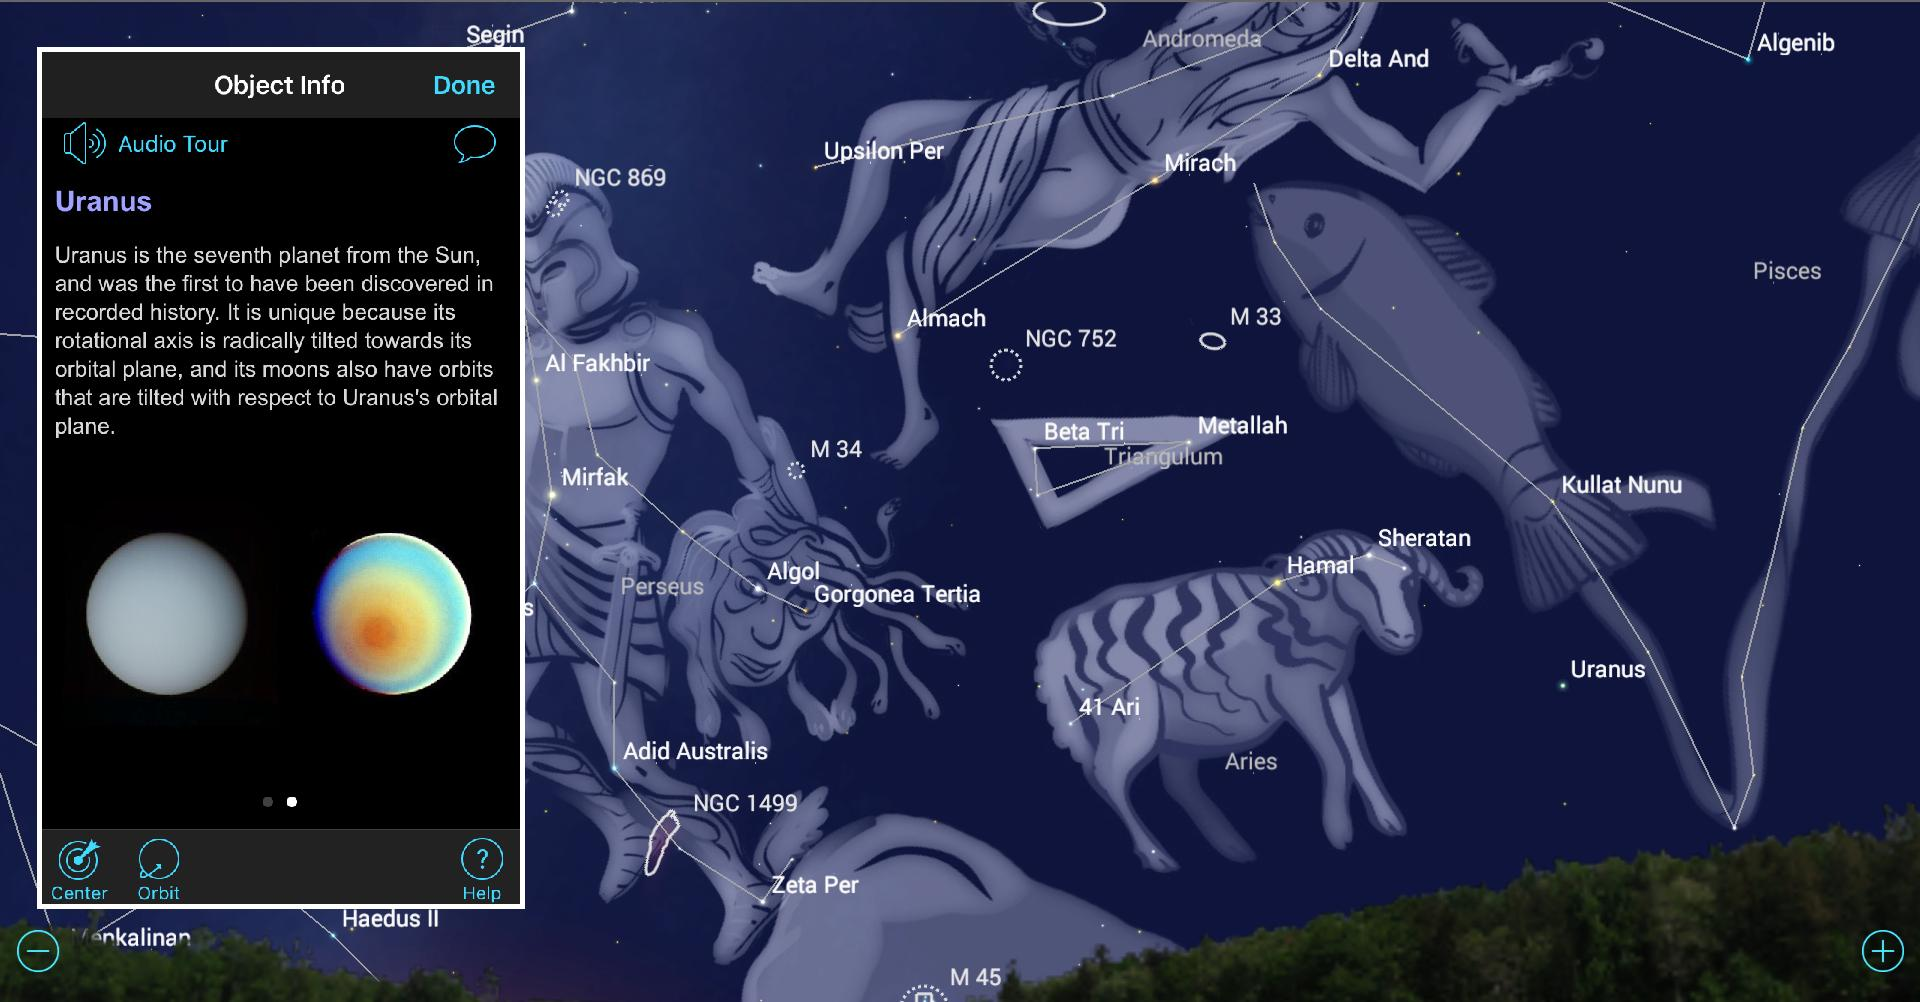 SkySafari News & Events | Master Universe From Your Mobile